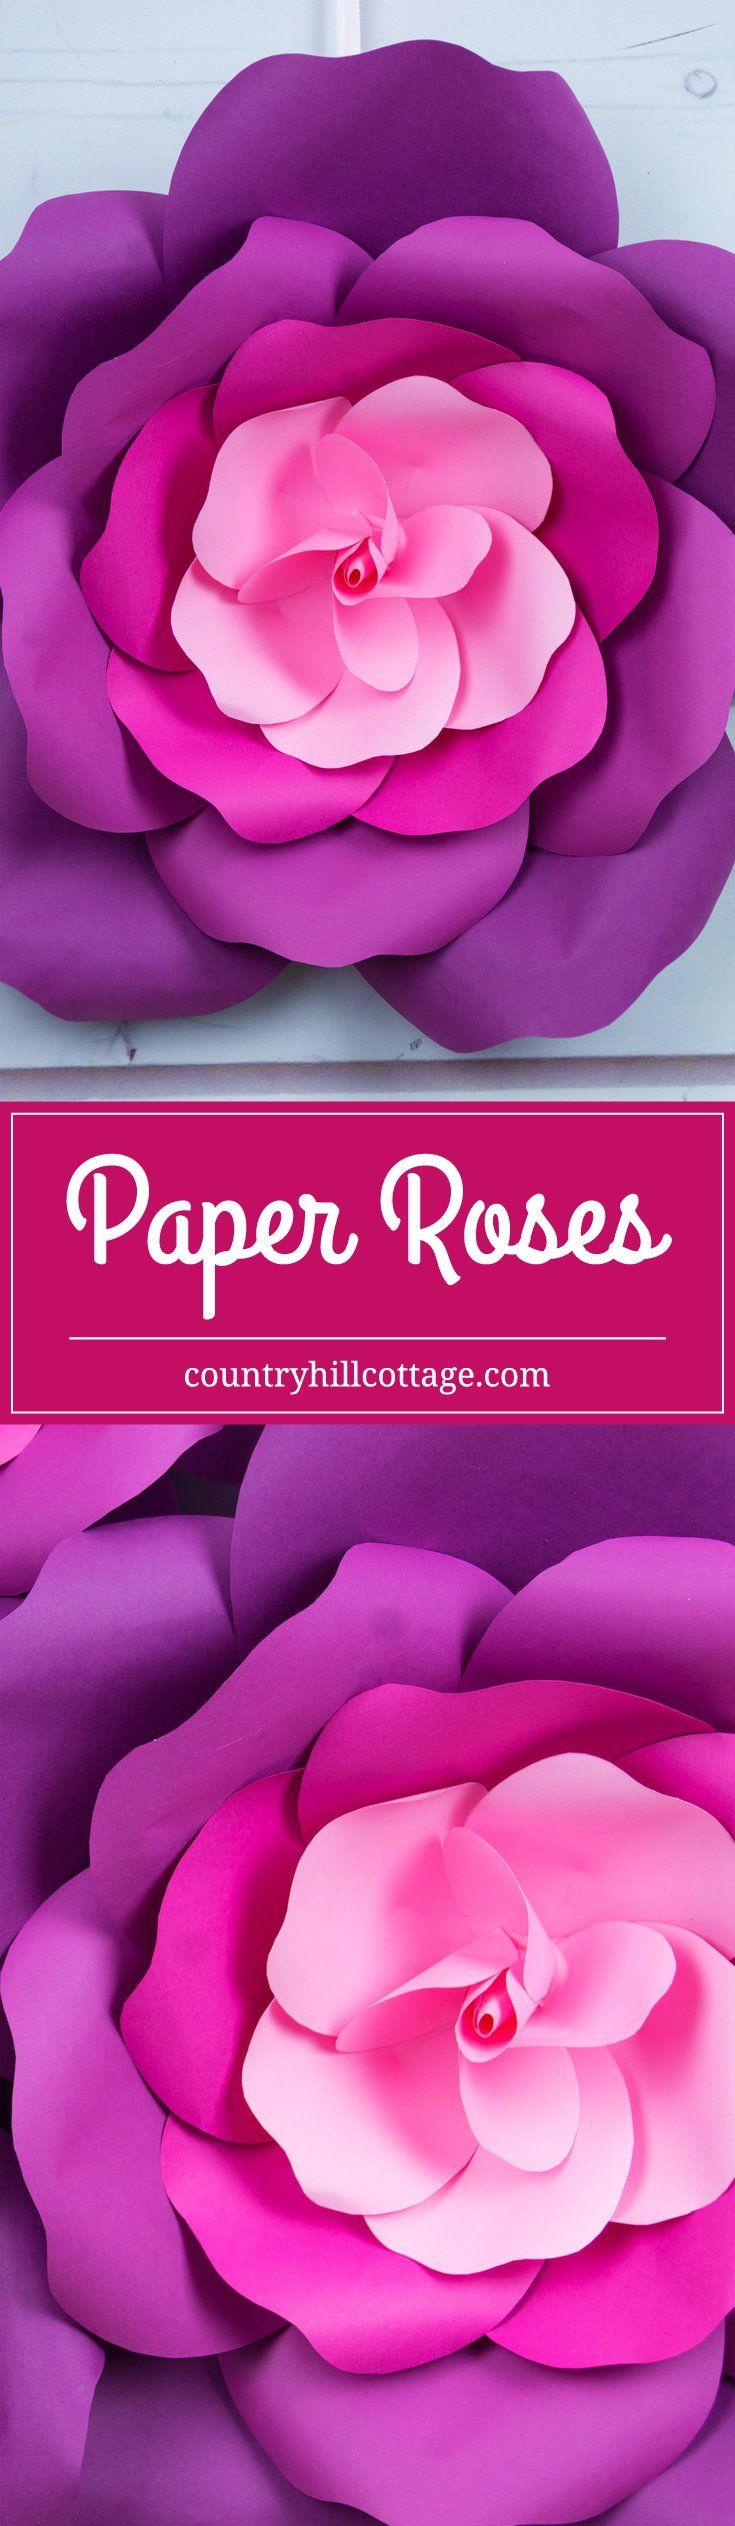 Learn to craft giant paper roses in 5 easy steps and get a free printable template for the petals. #papercrafts #paperflowers | countryhillcottage.com